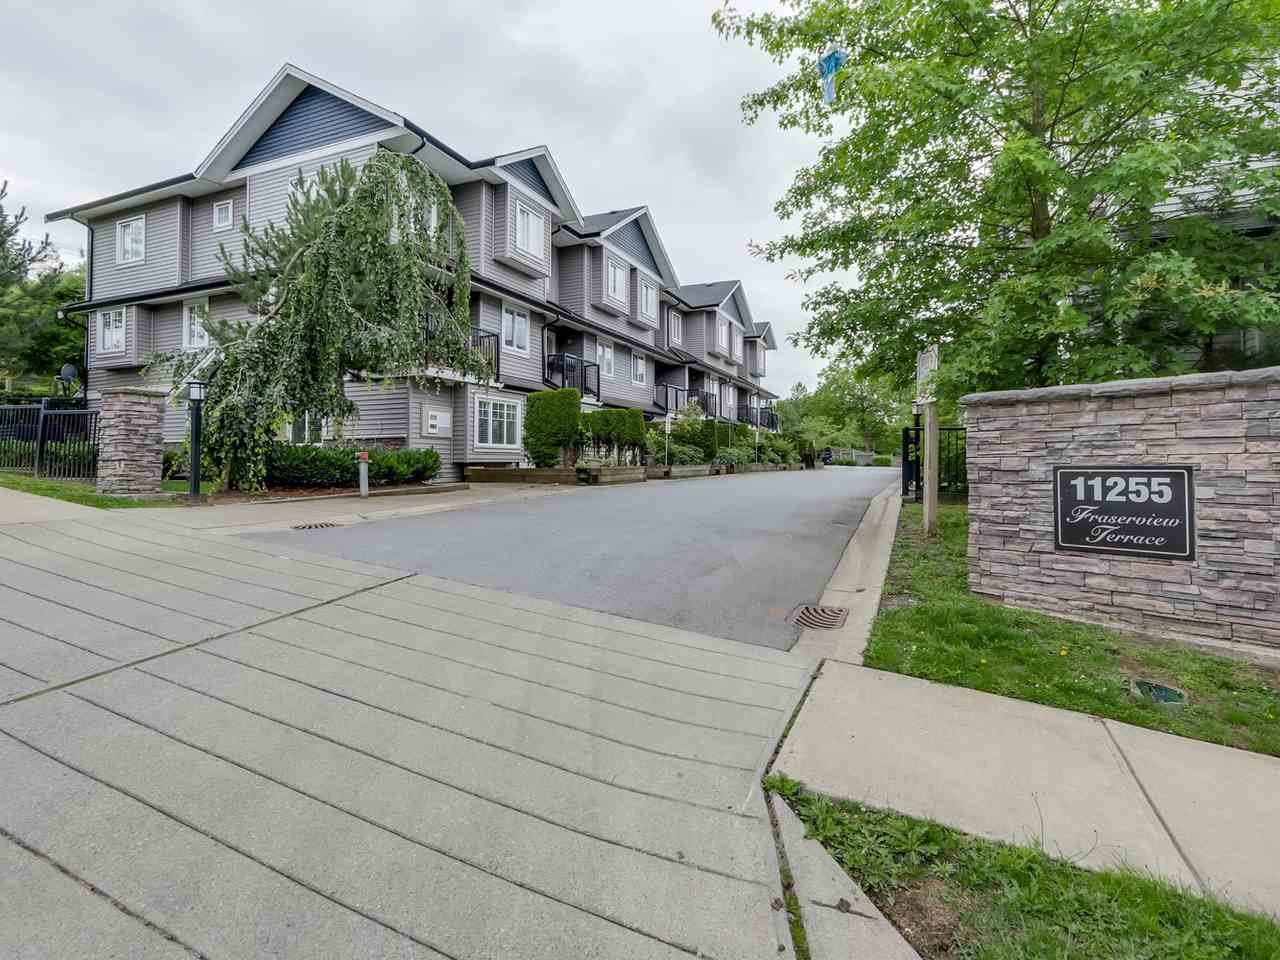 "Photo 1: Photos: 10 11255 132 Street in Surrey: Bridgeview Townhouse for sale in ""FRASERVIEW TERRACE"" (North Surrey)  : MLS®# R2086692"